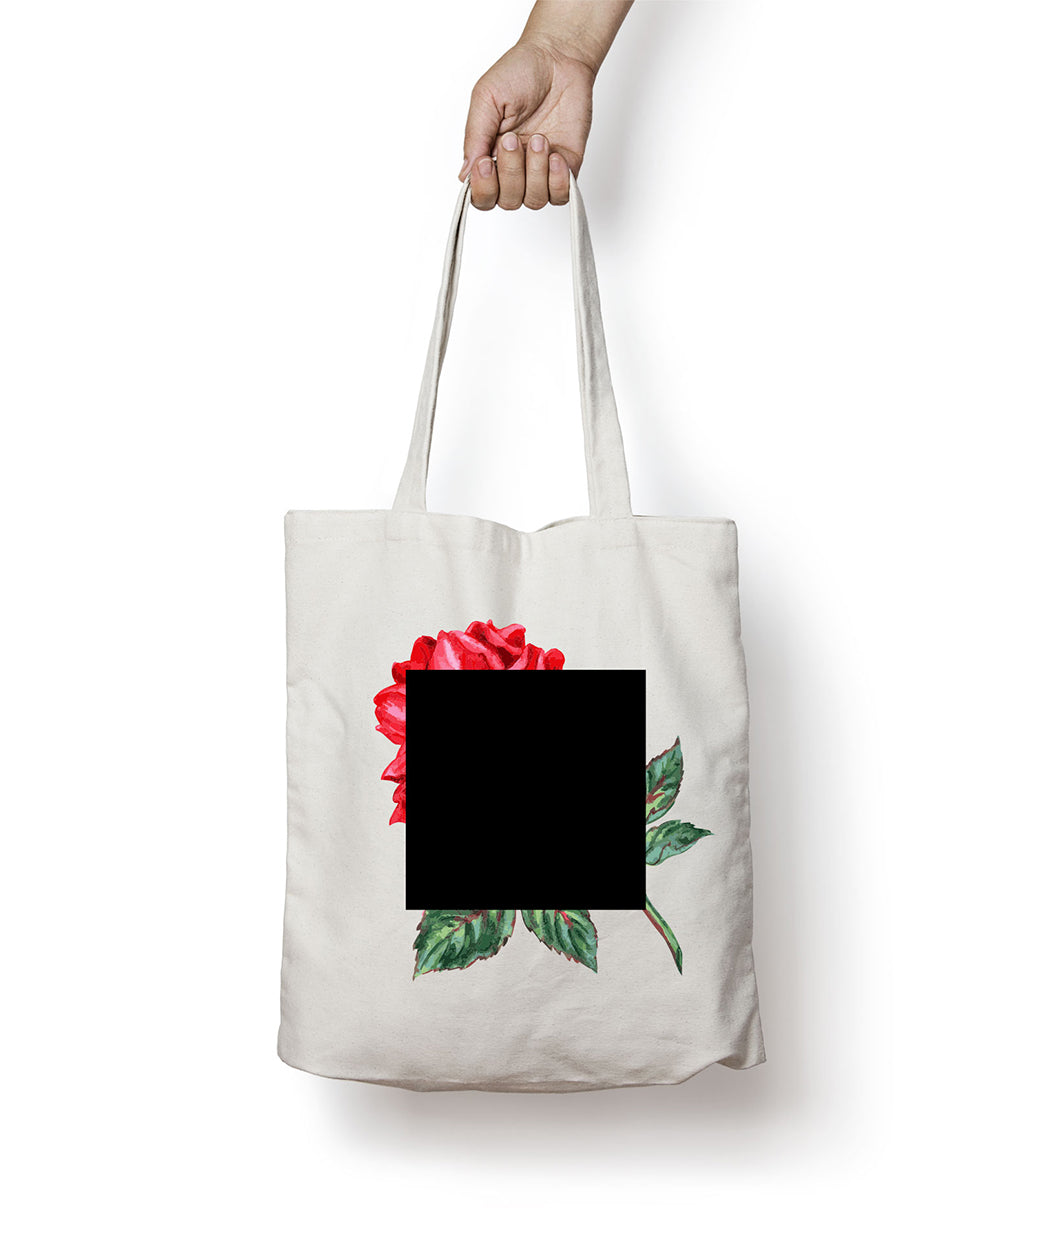 Agnes Martin Inspired Rose Art Tote Bag